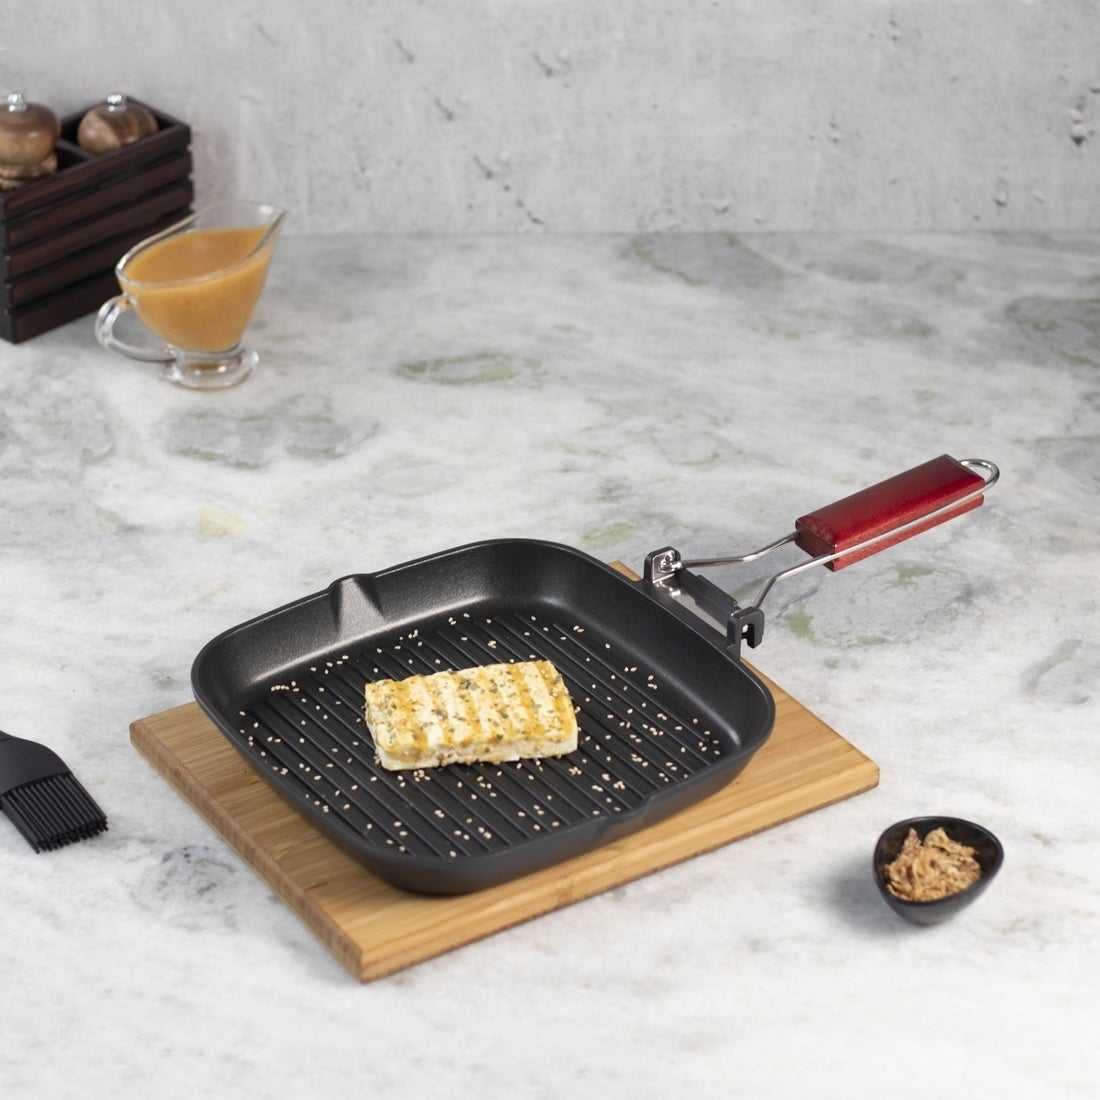 HOT 24CM Frying Pan Non Stick Cast Iron Square Grill Skillet Fry Griddle Cooking